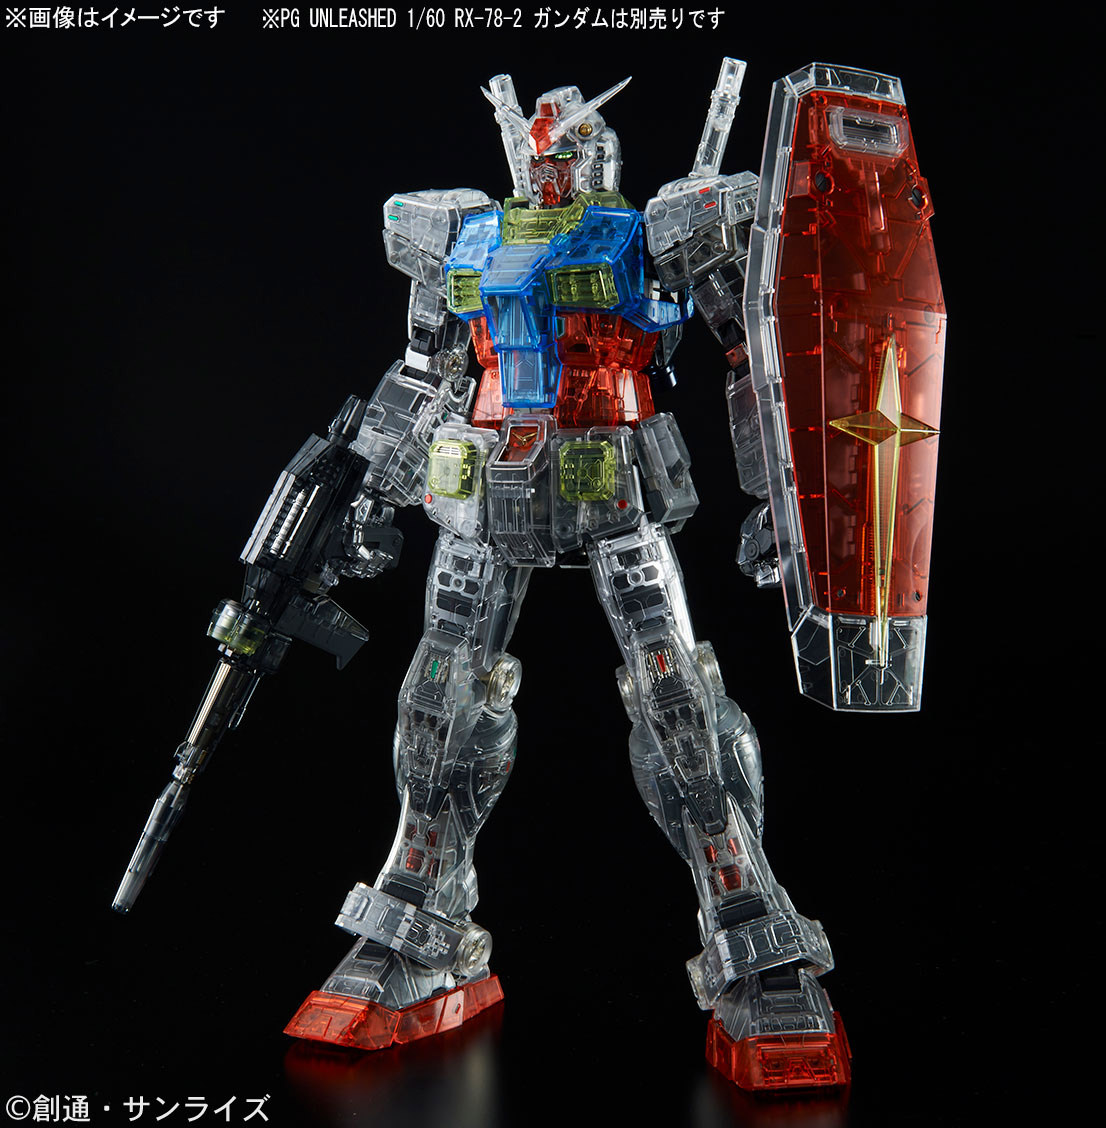 PG Unleashed 1/60 RX-78-2 Gundam Clear Color Body Parts